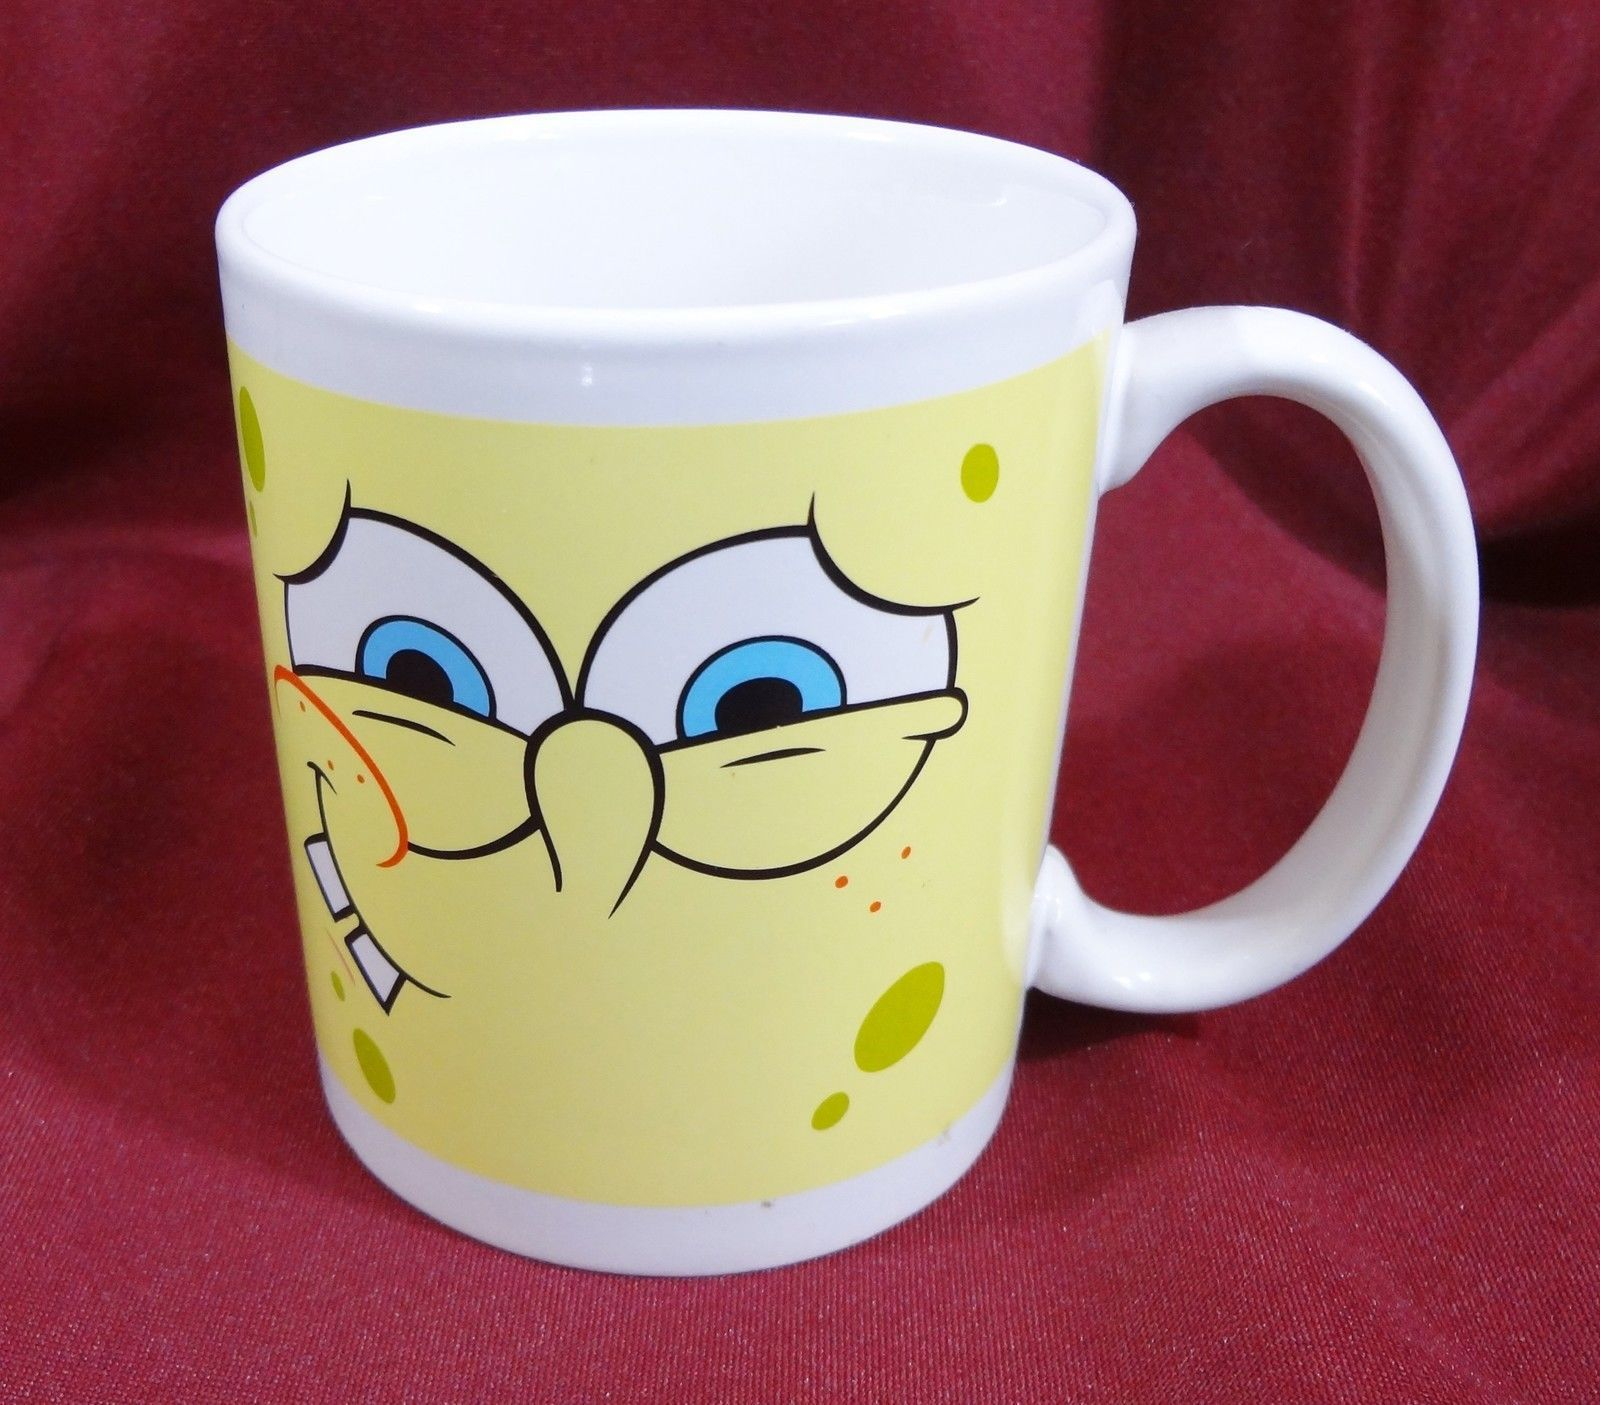 Spongebob Squarepants 10 oz Ceramic Coffee Mug Cup